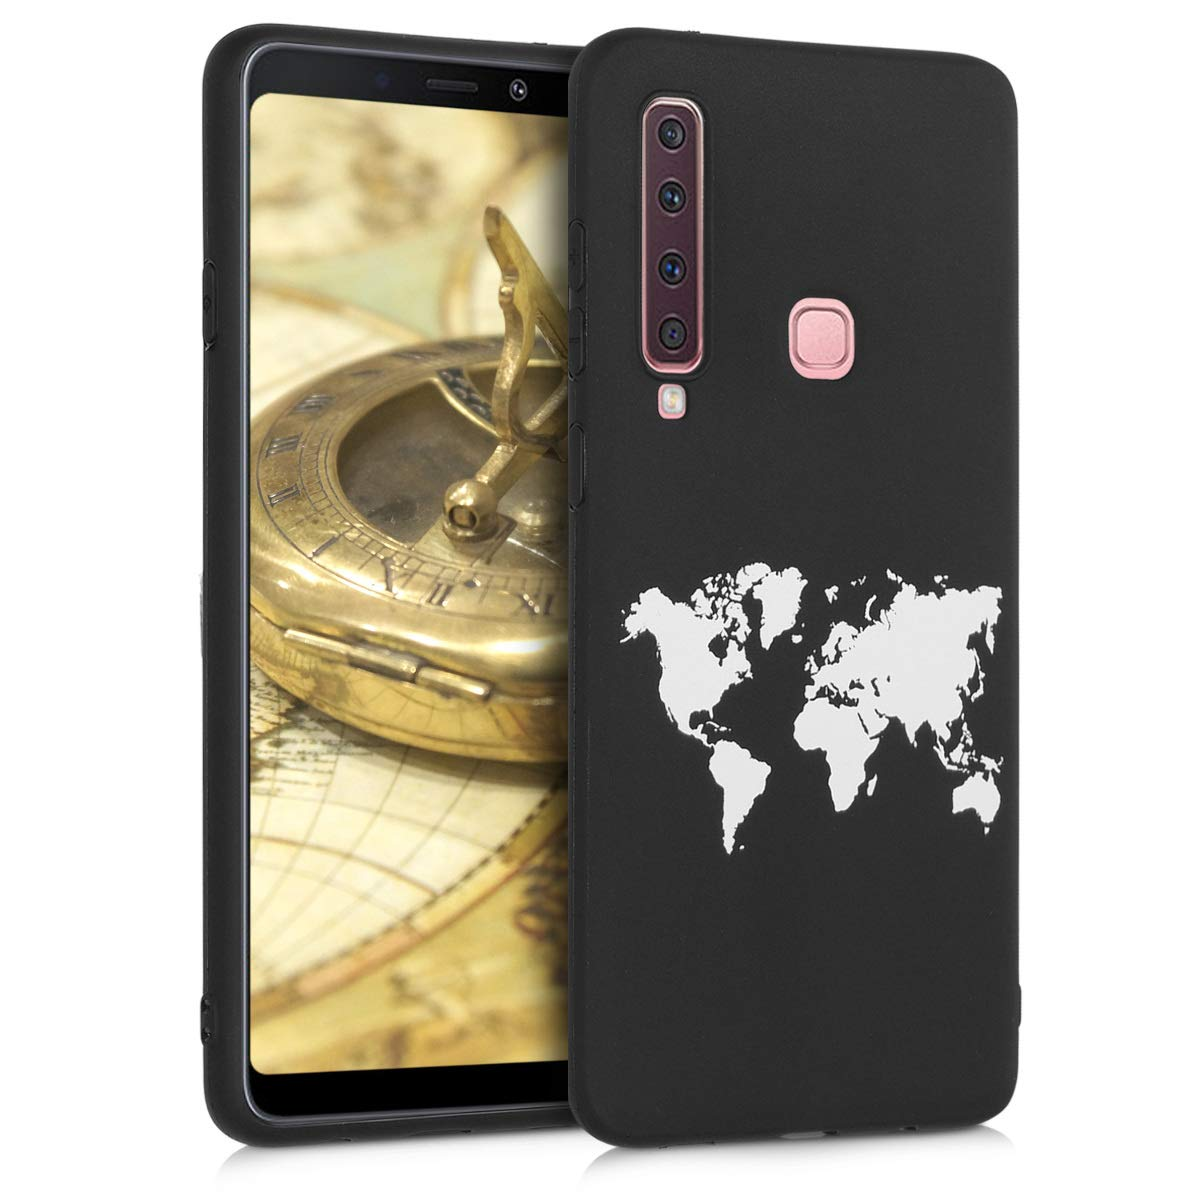 kwmobile TPU Silicone Case for Samsung Galaxy A9 (2018) - Soft Flexible Shock Absorbent Protective Phone Cover - White/Black